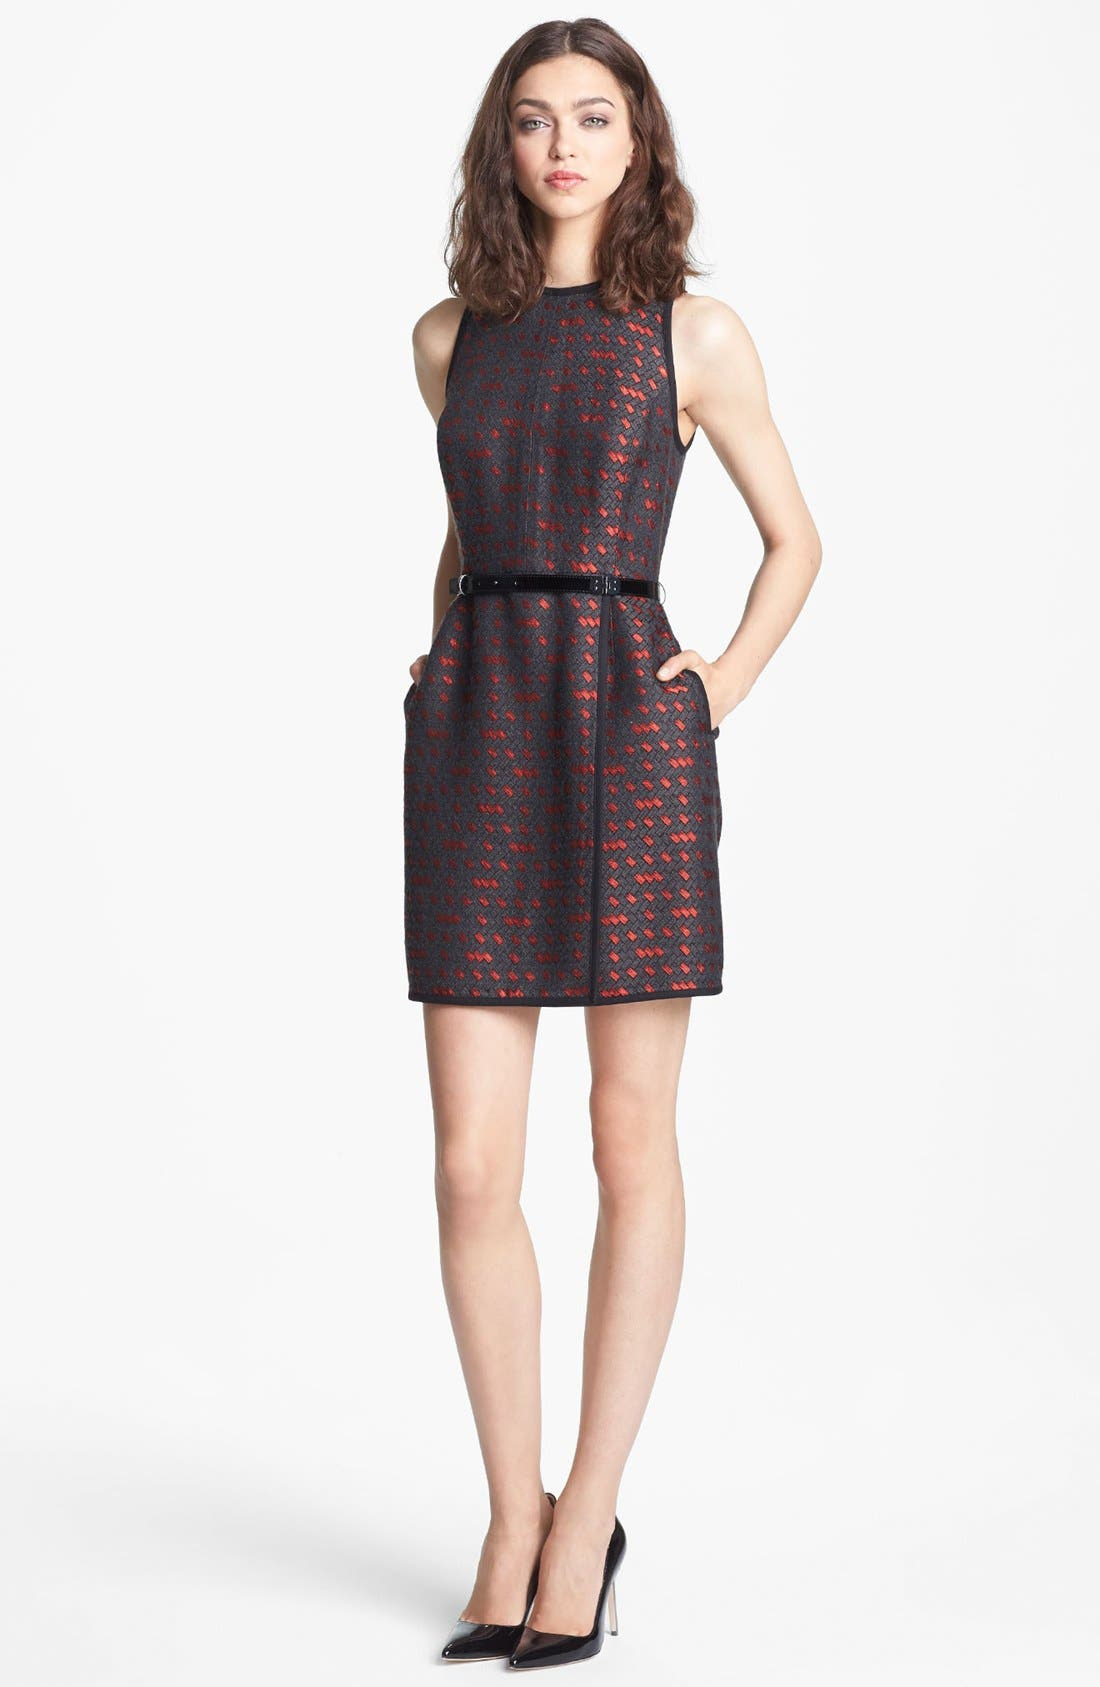 Alternate Image 1 Selected - Miss Wu 'Gallone' Jacquard Dress (Nordstrom Exclusive)